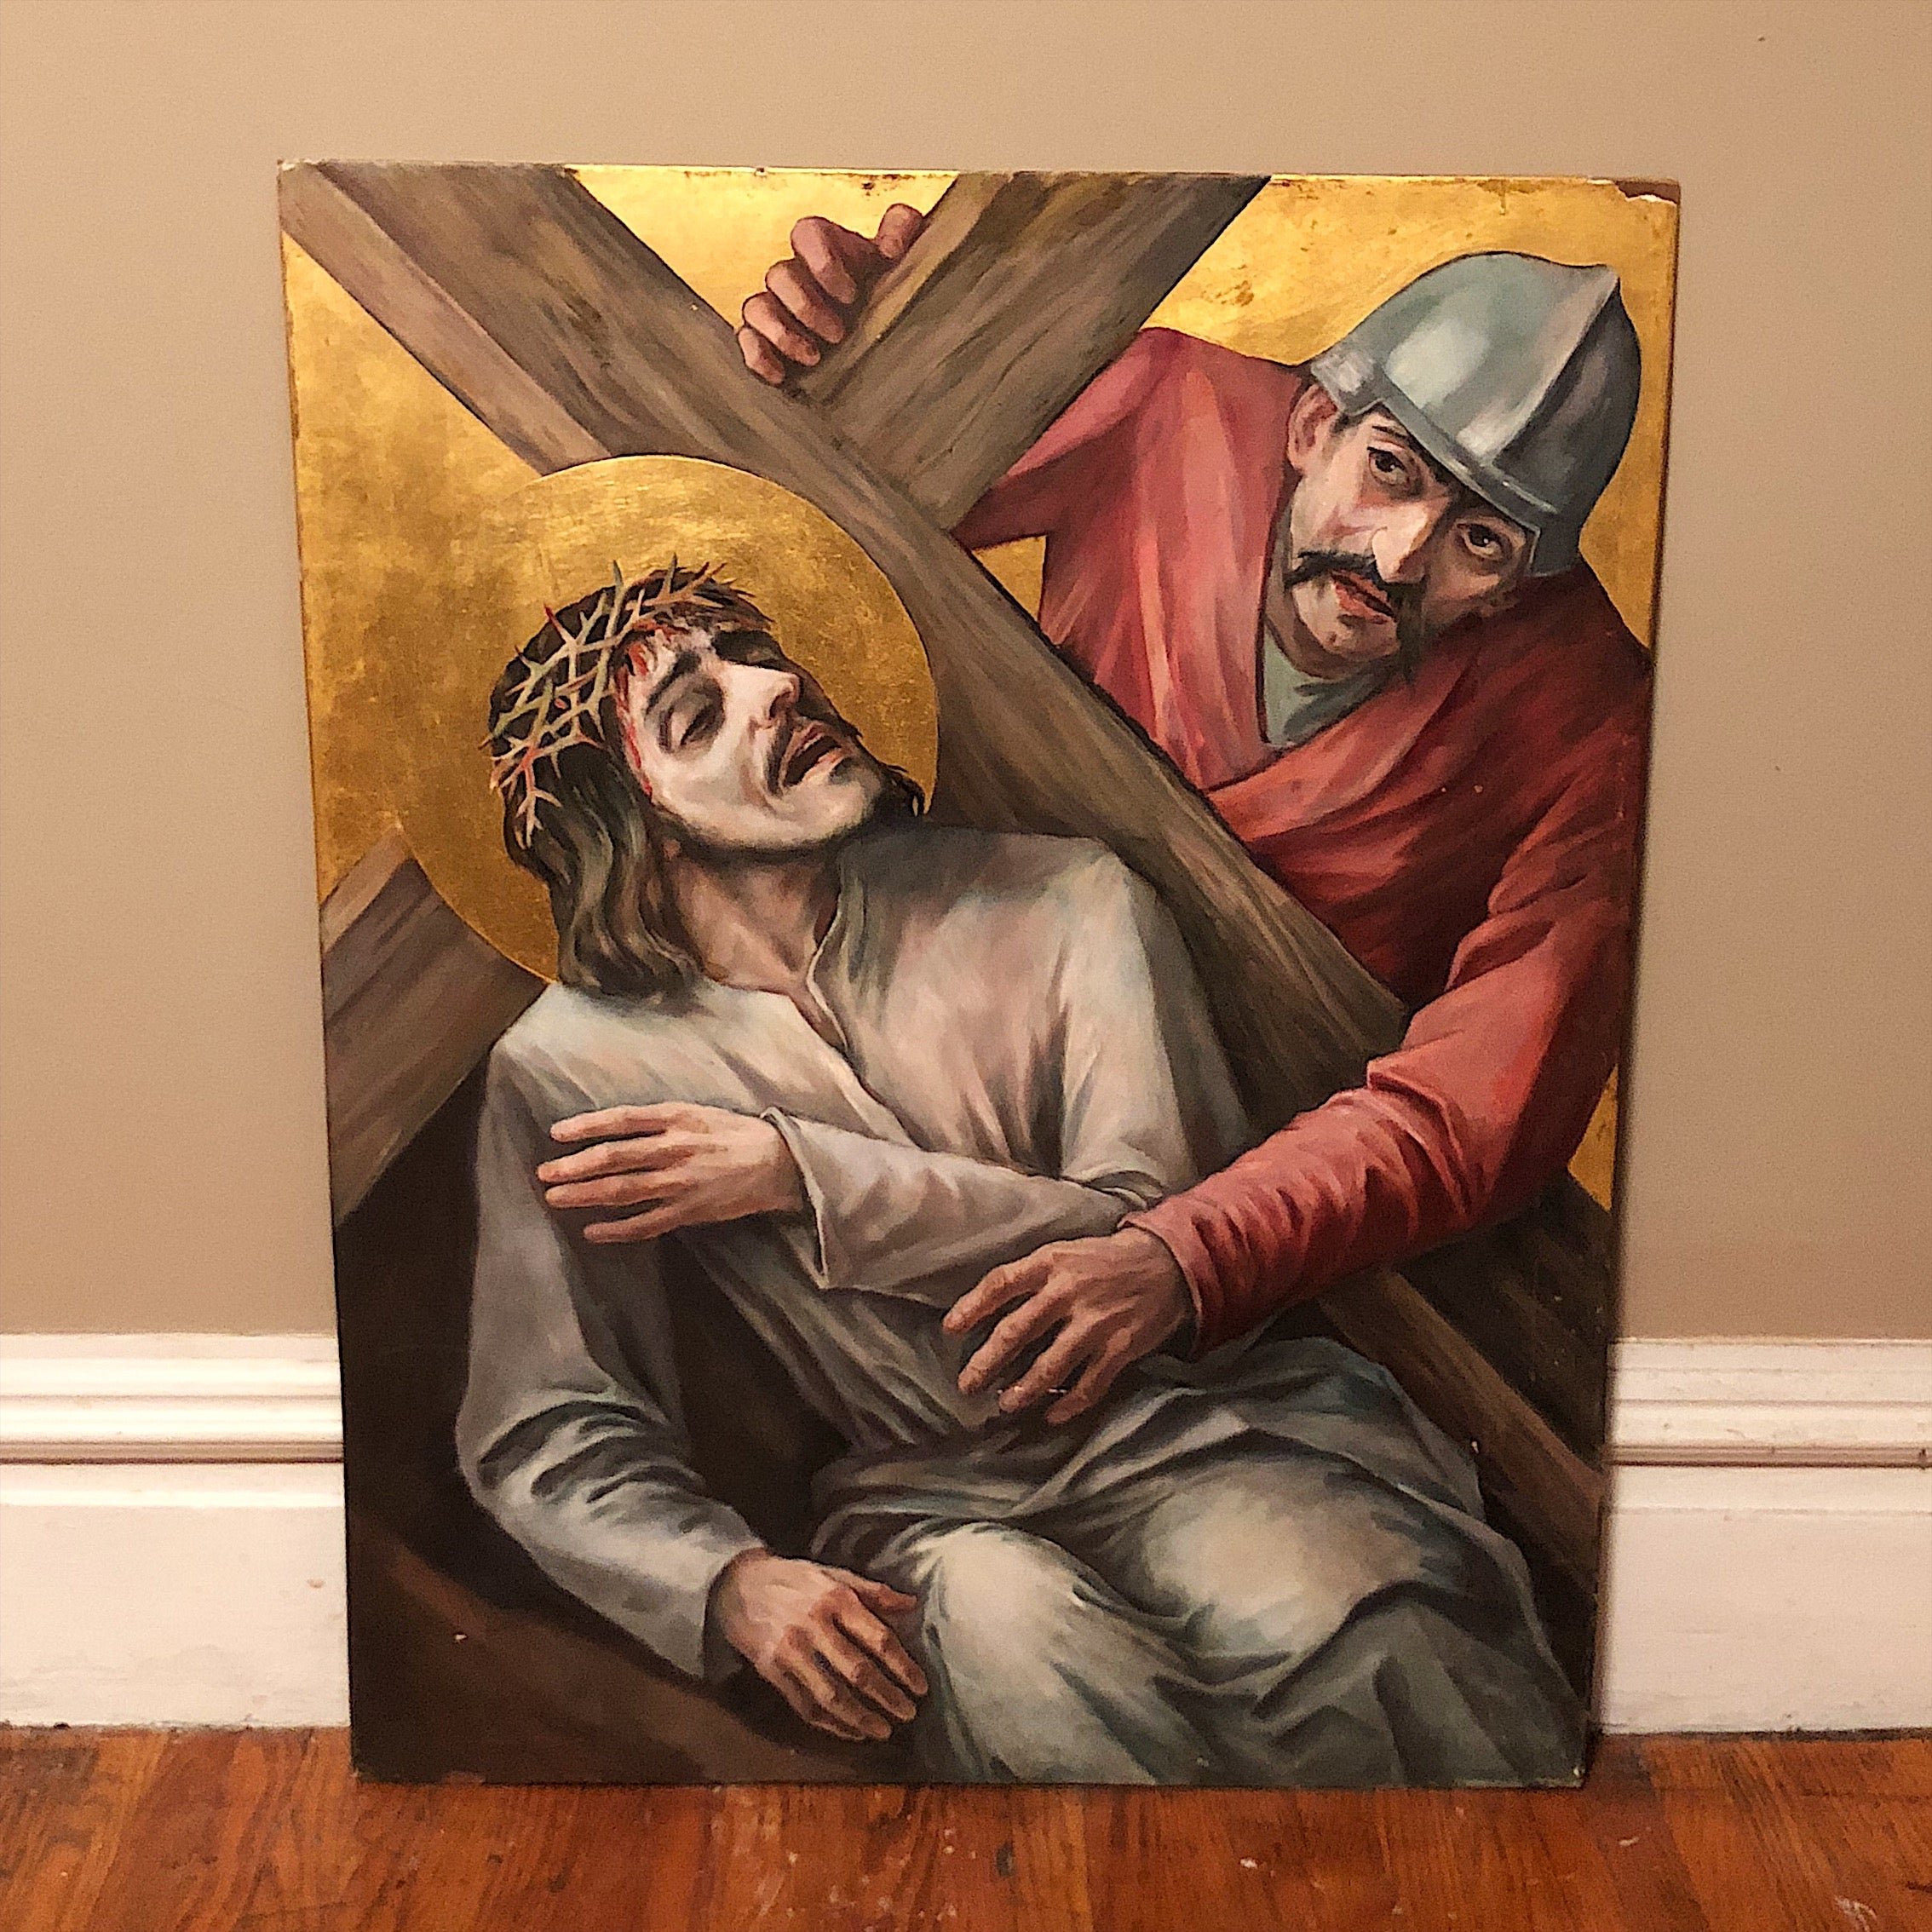 Crucifixion Scene from Stations of the Cross